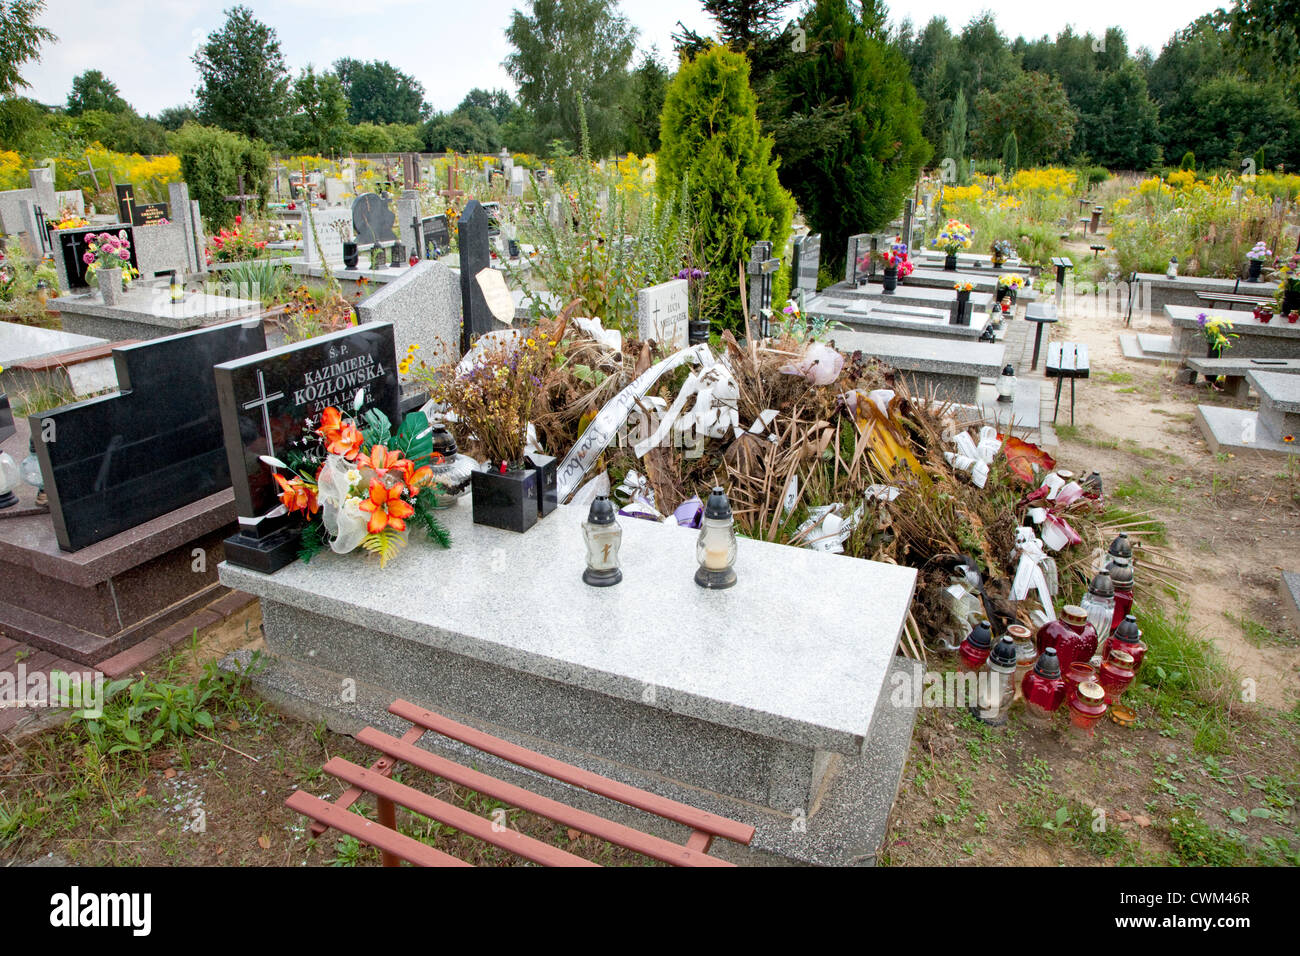 Overall view of the beautiful Roman Catholic Church's Cemetery (Cmentarz Rzymskokatolicki). Lodz Central Poland - Stock Image